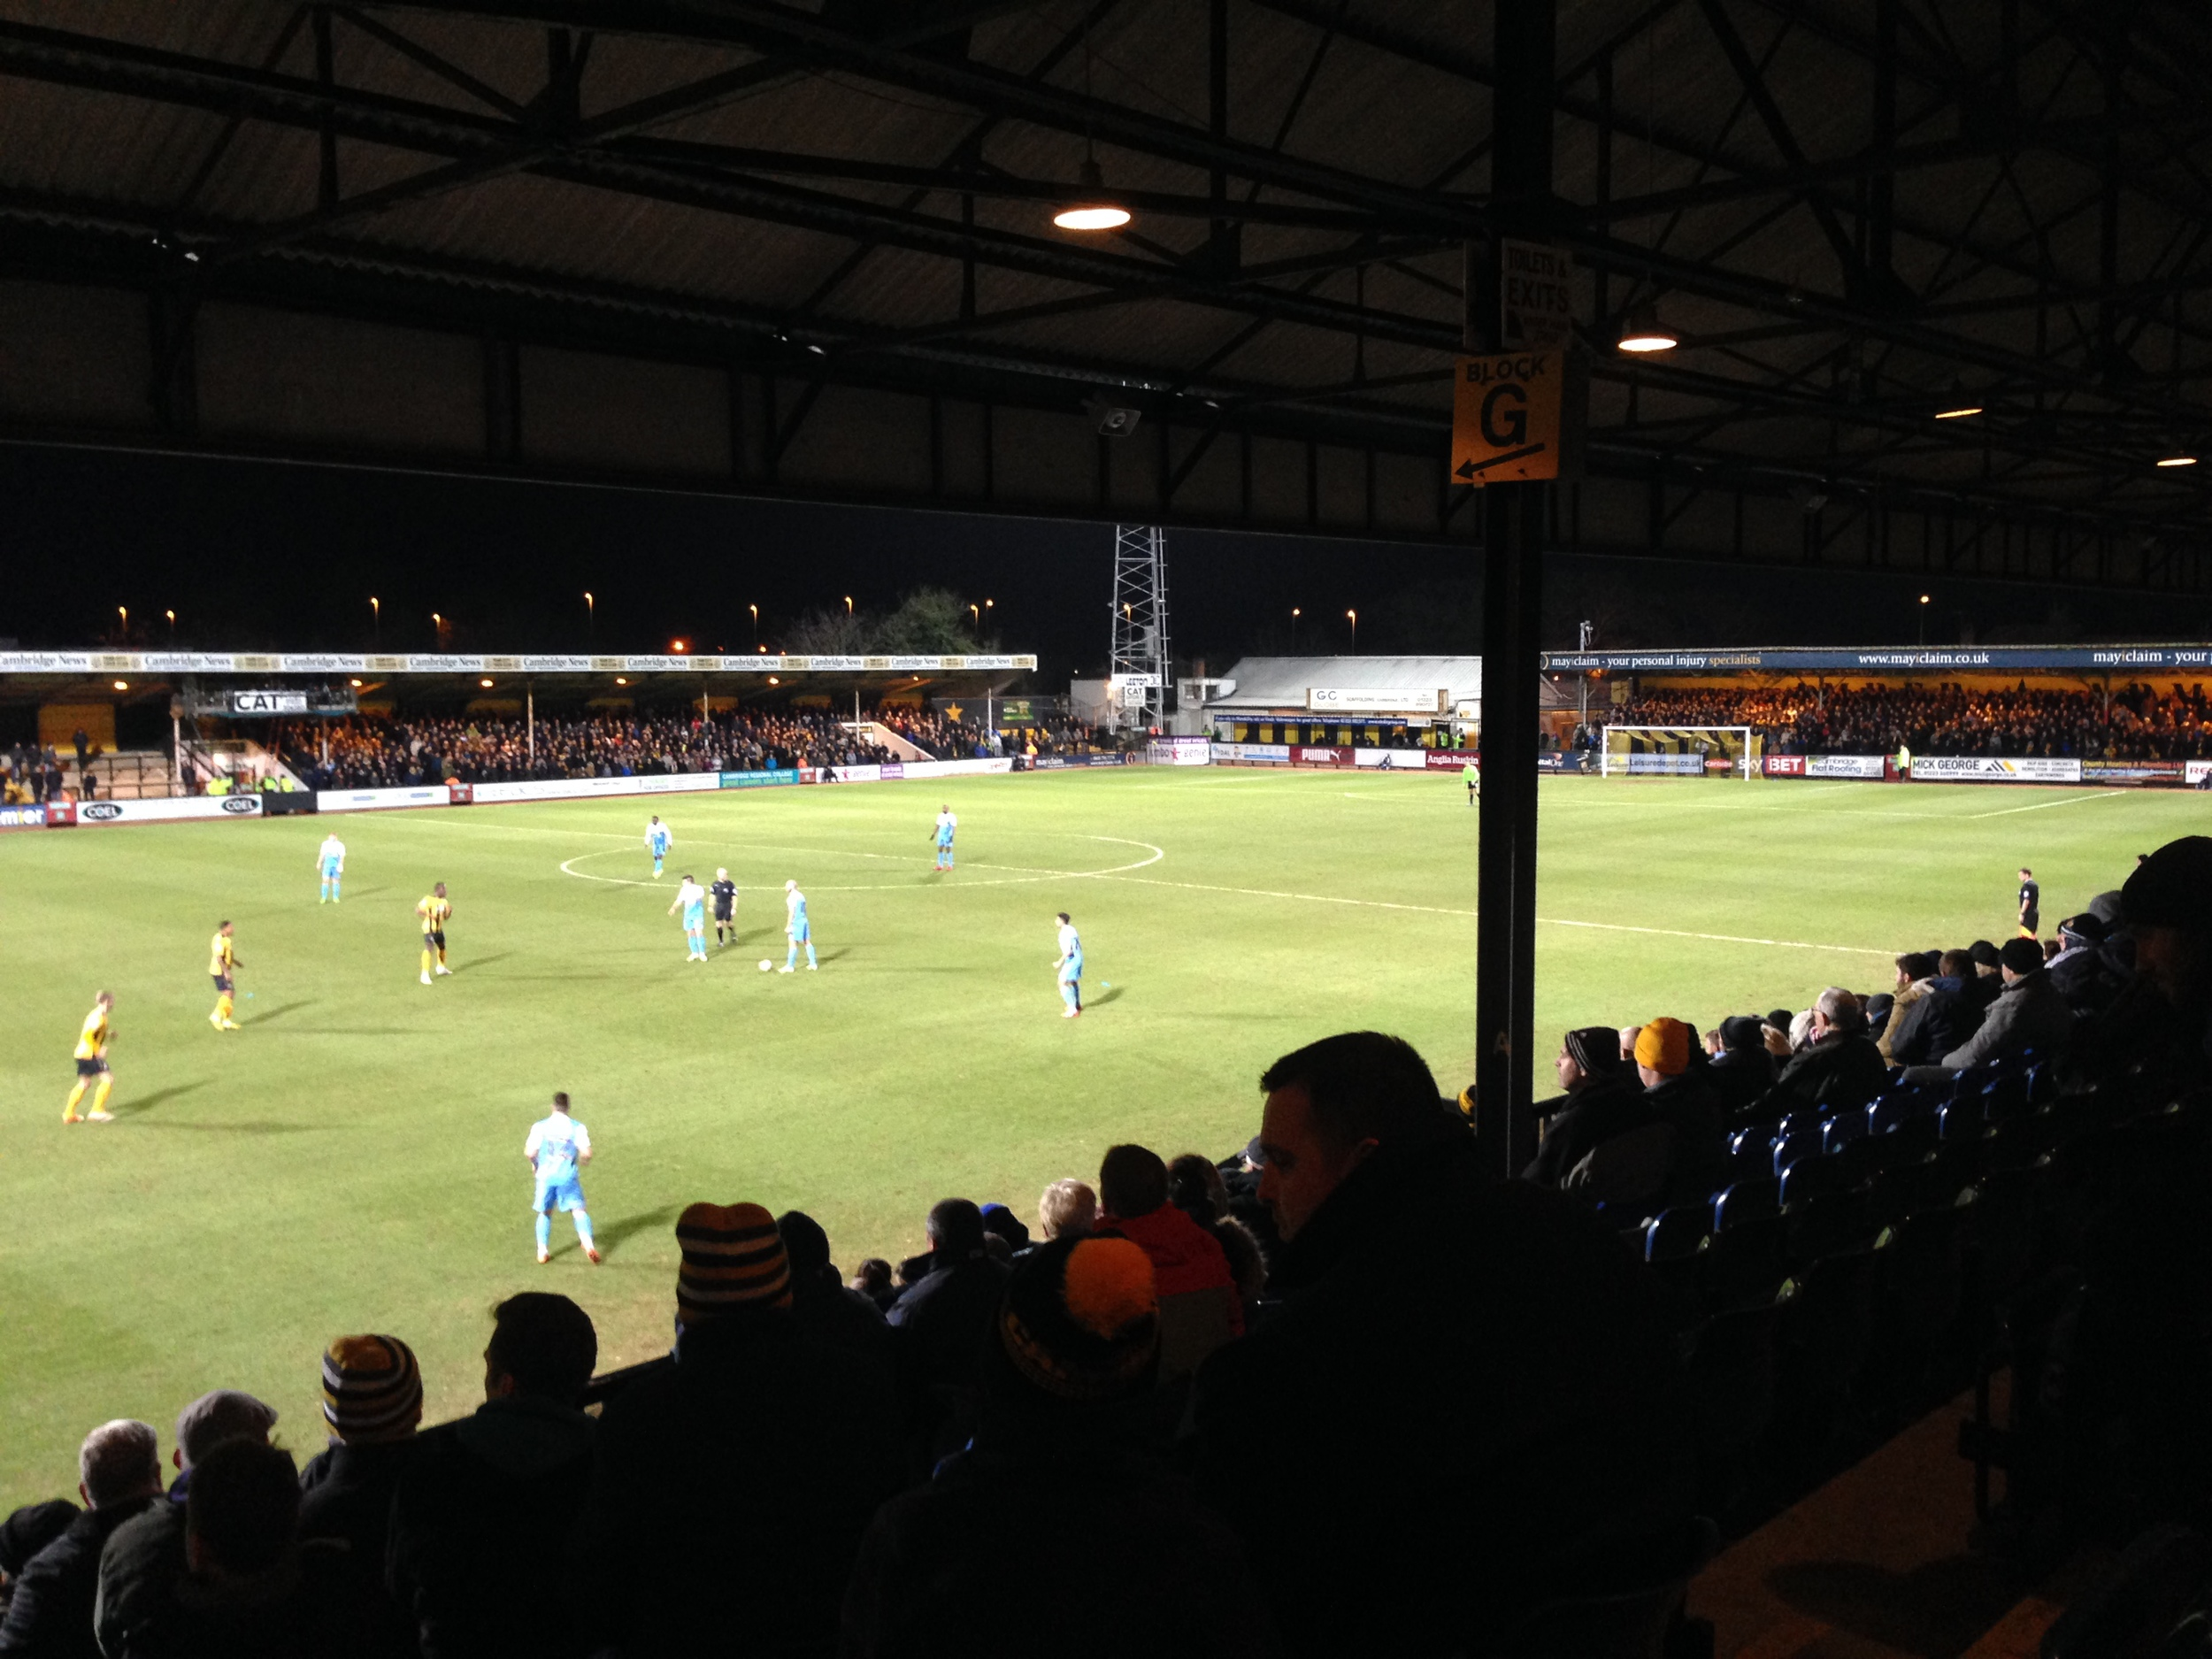 Cambridge United vs York